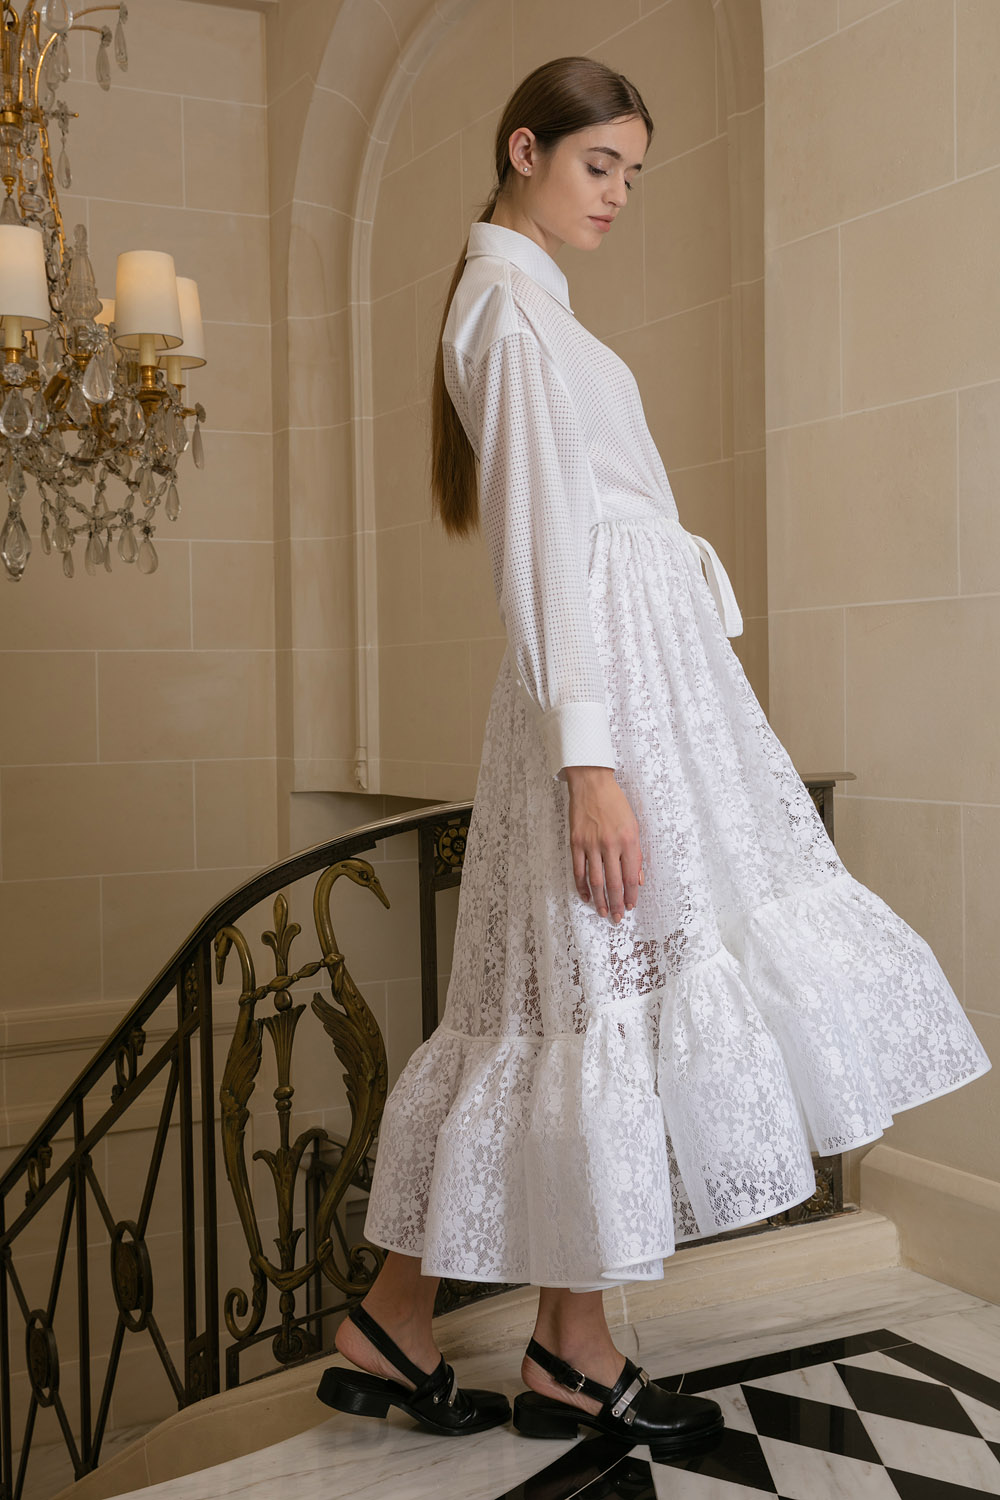 Boutiquelessuites Com Lessuitesonline Buy Lena Lumelsky White Fit To Flare Lace Dress On Our Website